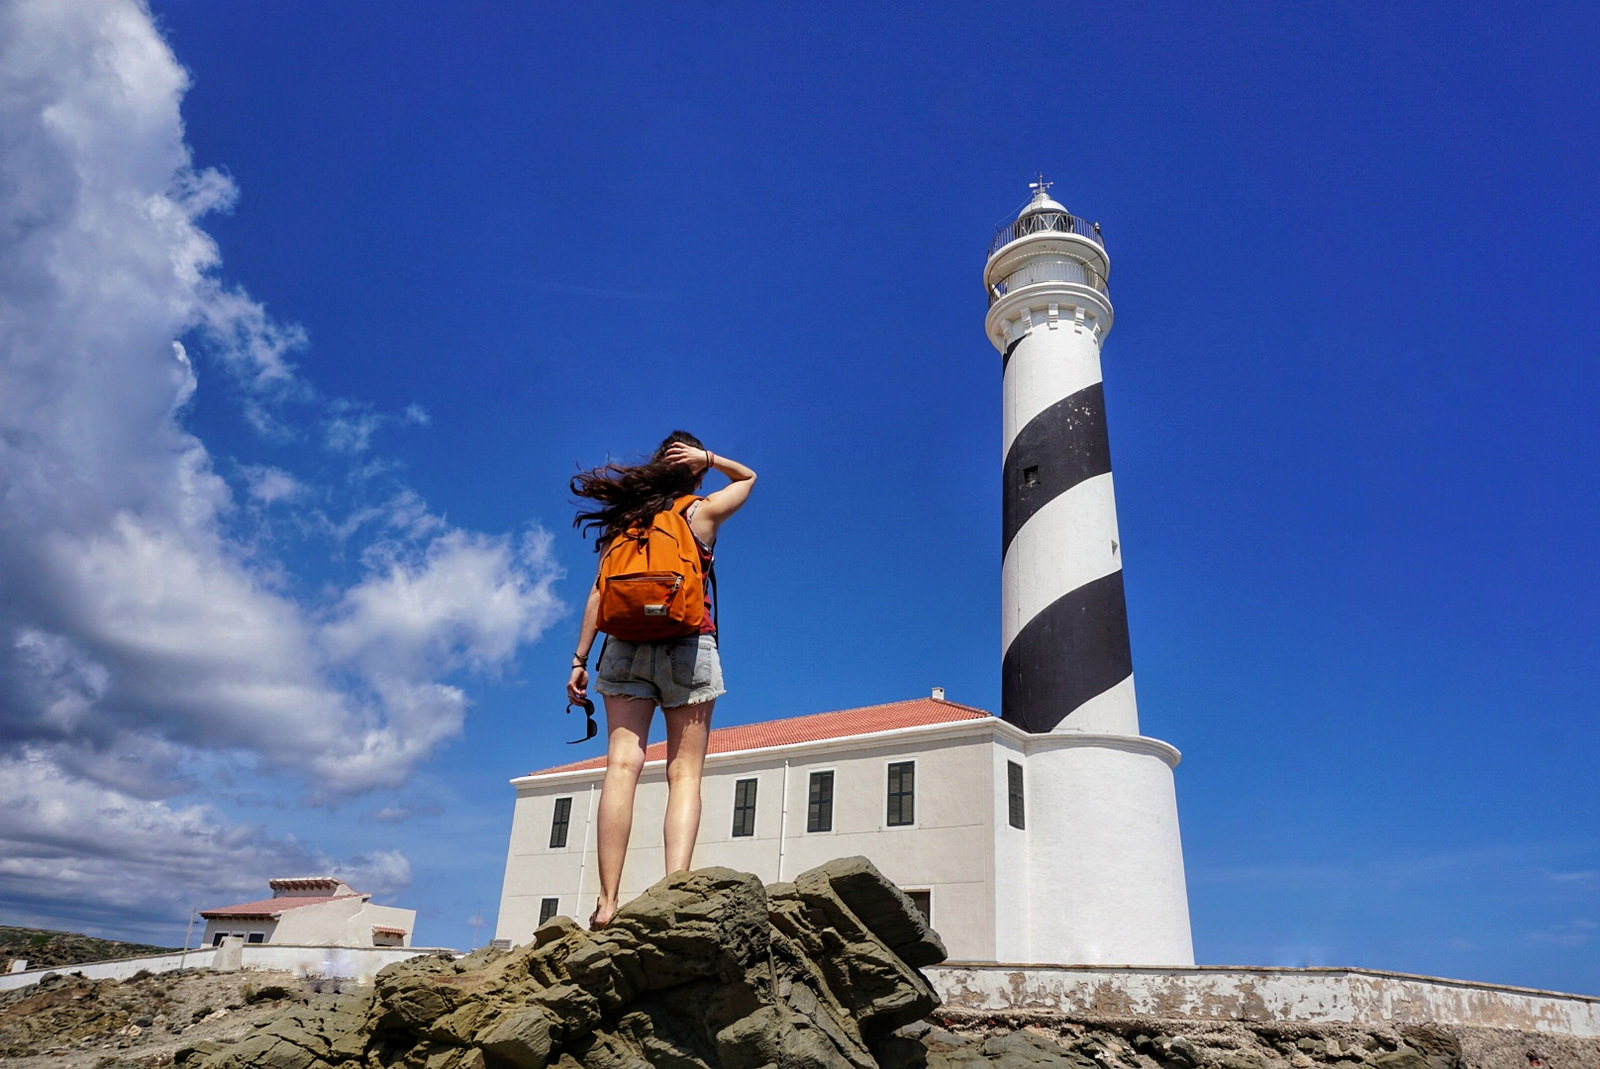 Lepers Pirates Amp Lighthouses A Tour Guide S Passion For Menorca